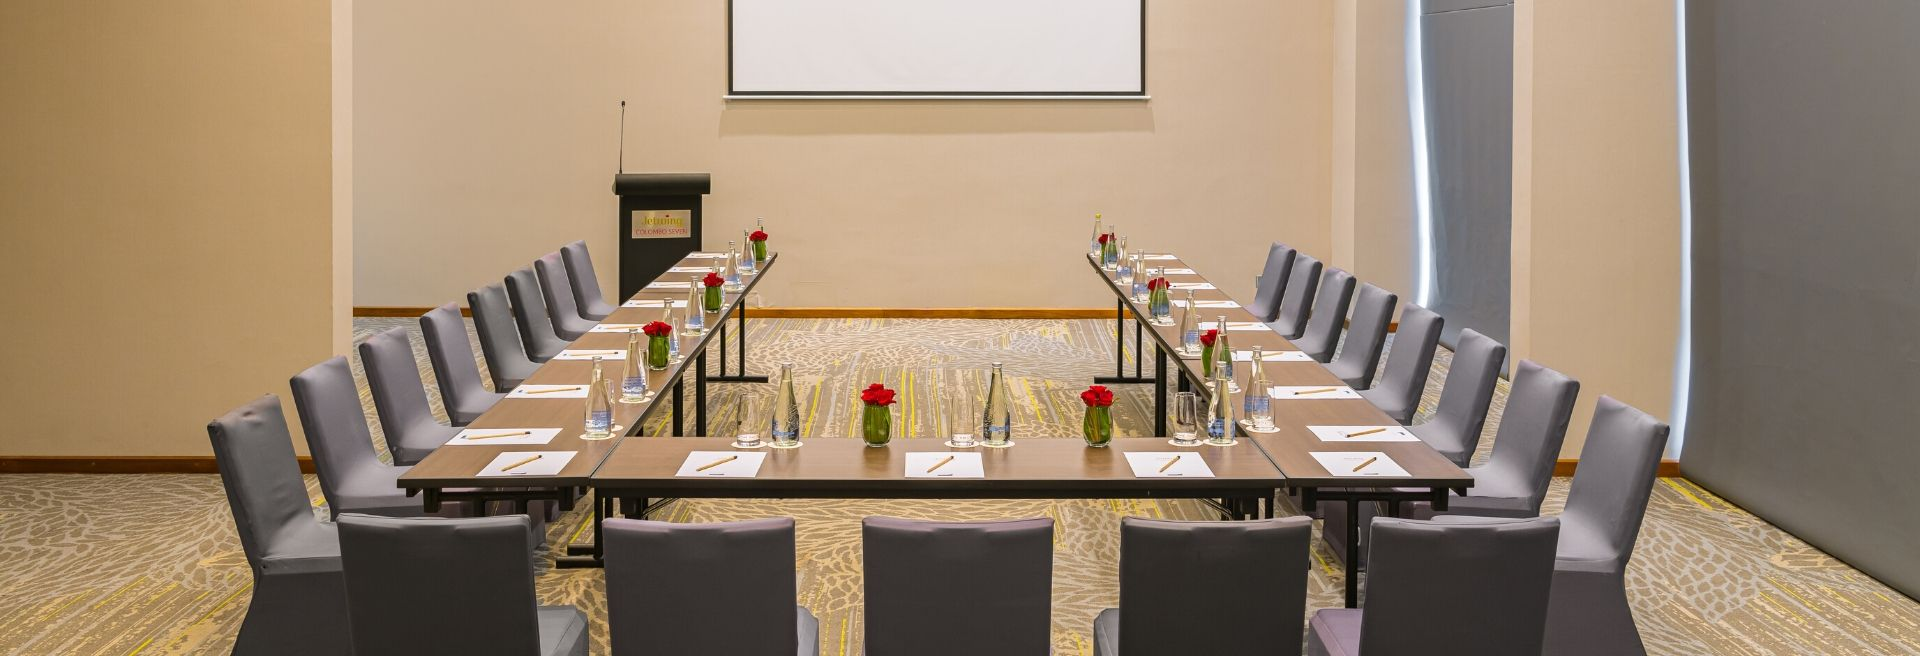 Spacious And Luxury Conferance Room